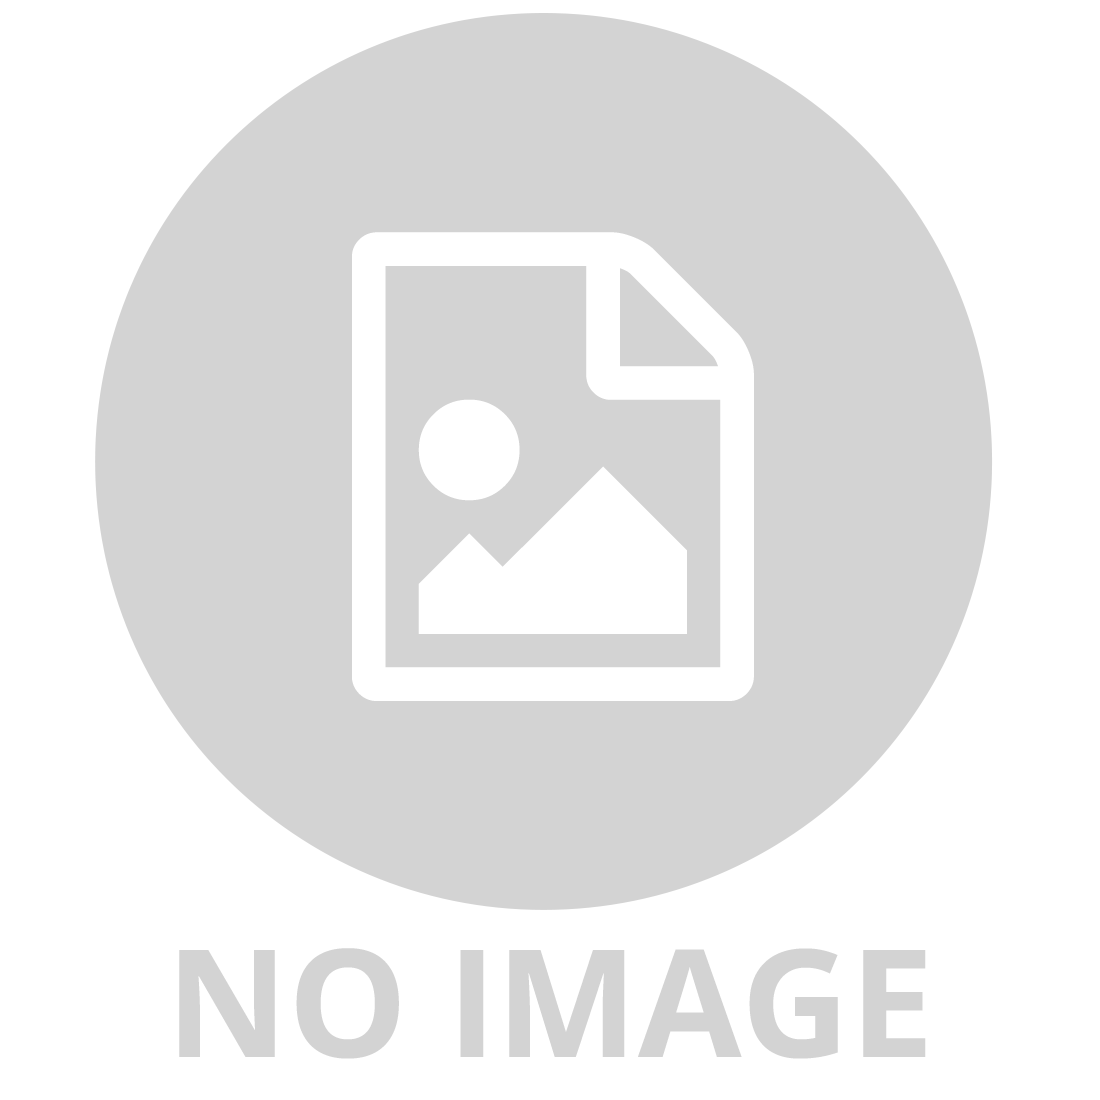 DERBY STABLE WITH 4 HORSES